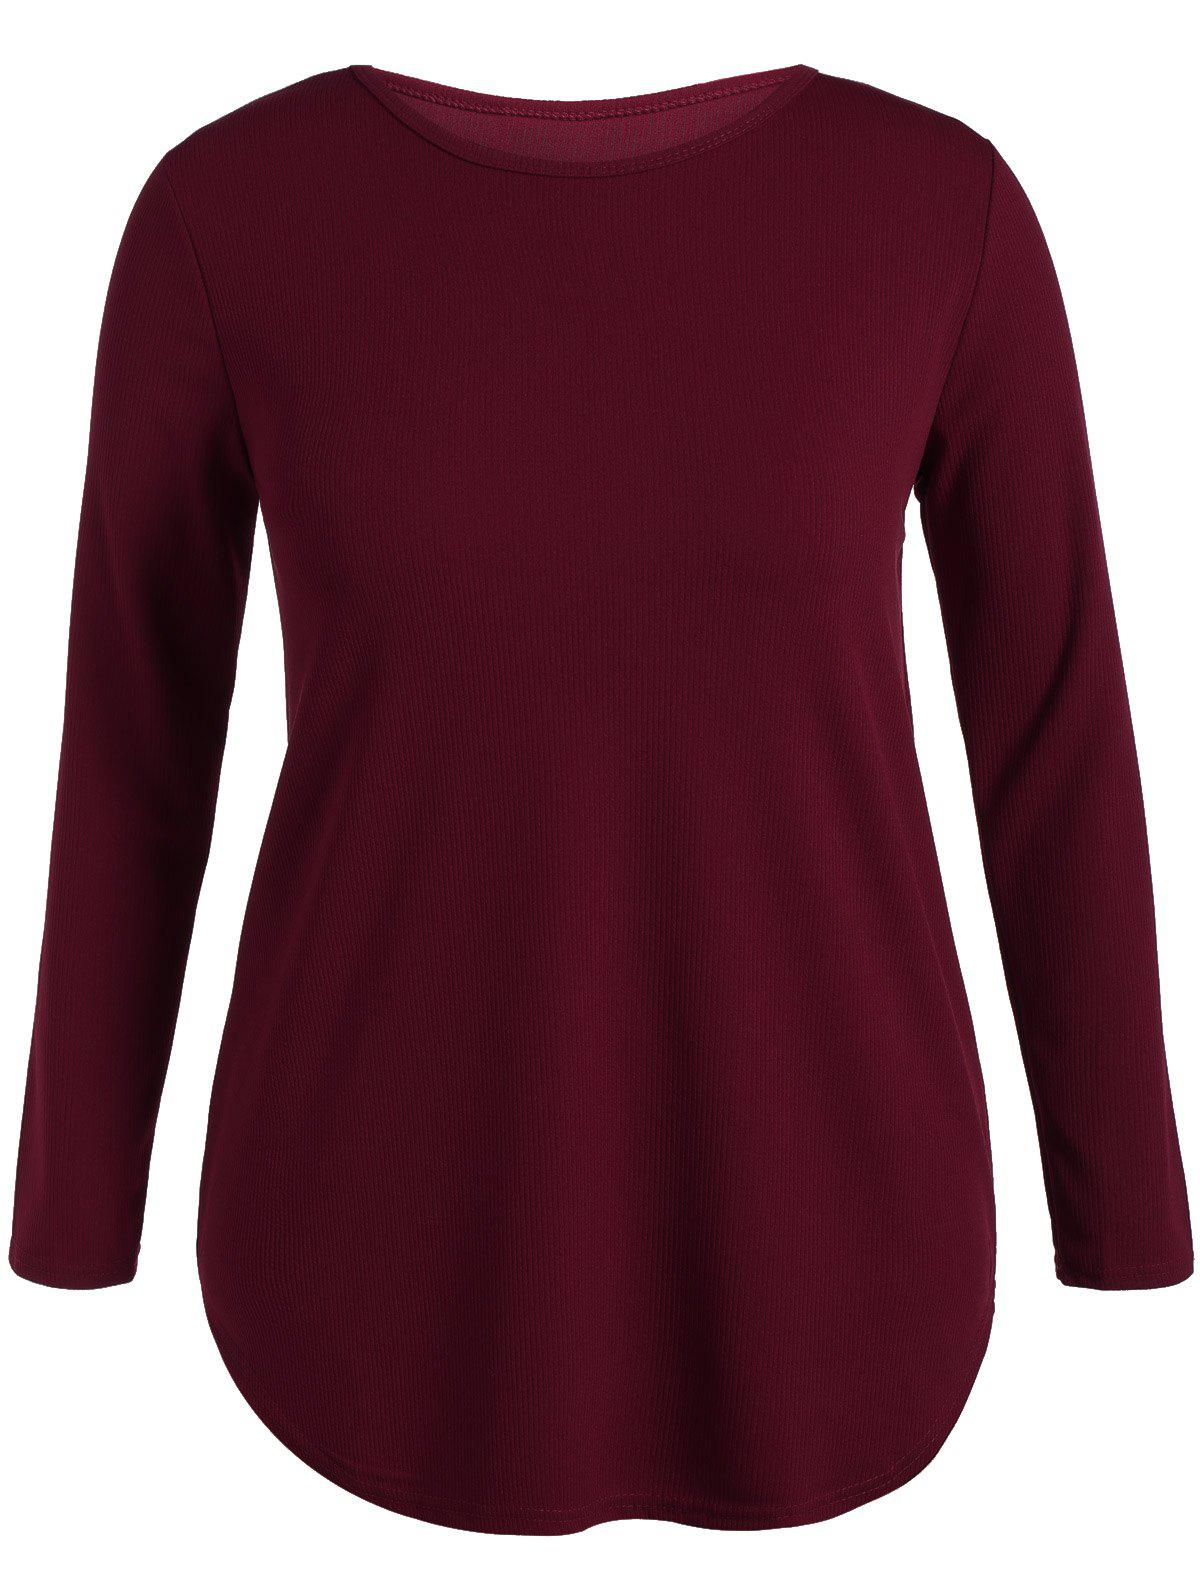 Jewel Neck Long Sleeve Plus Size T-Shirt - WINE RED 5XL